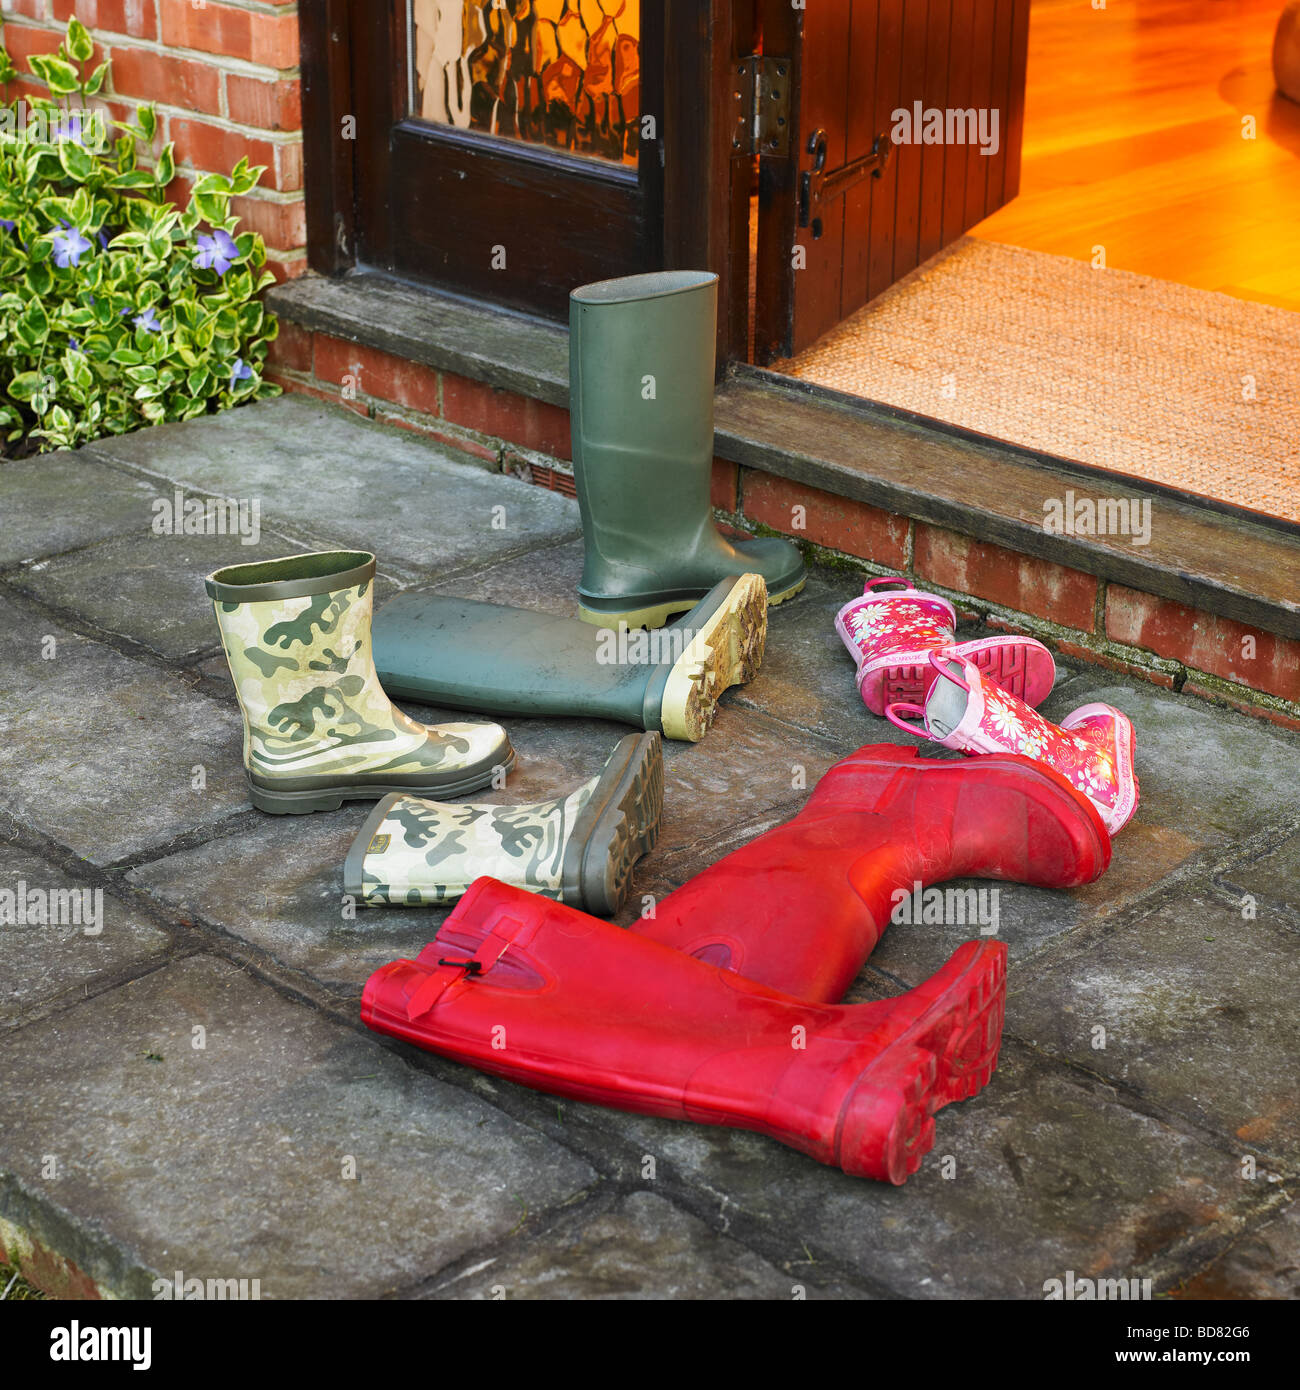 A rush to get home, a families wellington boots left outside the front door. - Stock Image